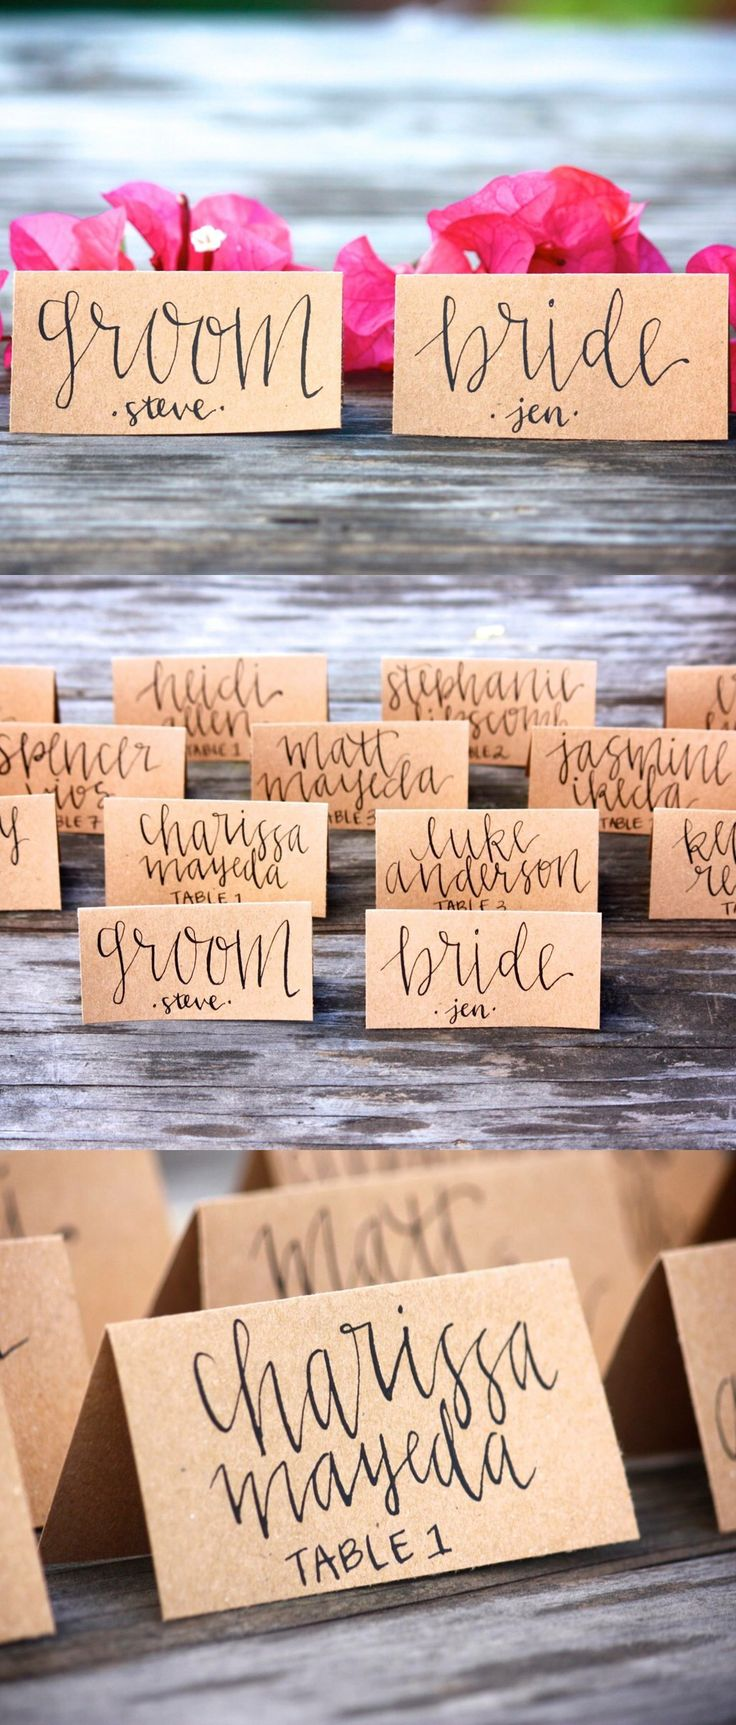 PLACE CARD WEDDING DECOR IDEAS || Wedding Place Cards - Tent Fold - Escort Card - Black Calligraphy with Kraft Paper - Bride Groom - Dinner Party - Name Tag || www.etsy.com/shop/FullyMade || red unique pink party favors little note thank you special day guest dance signs invitations personalized custom ideas unique shabby chic coral navy glitter dipped table setting floral plates white bougainvillea wine cursive vintage mint seating engagement theme parties bridal shower ideas rustic shabby…